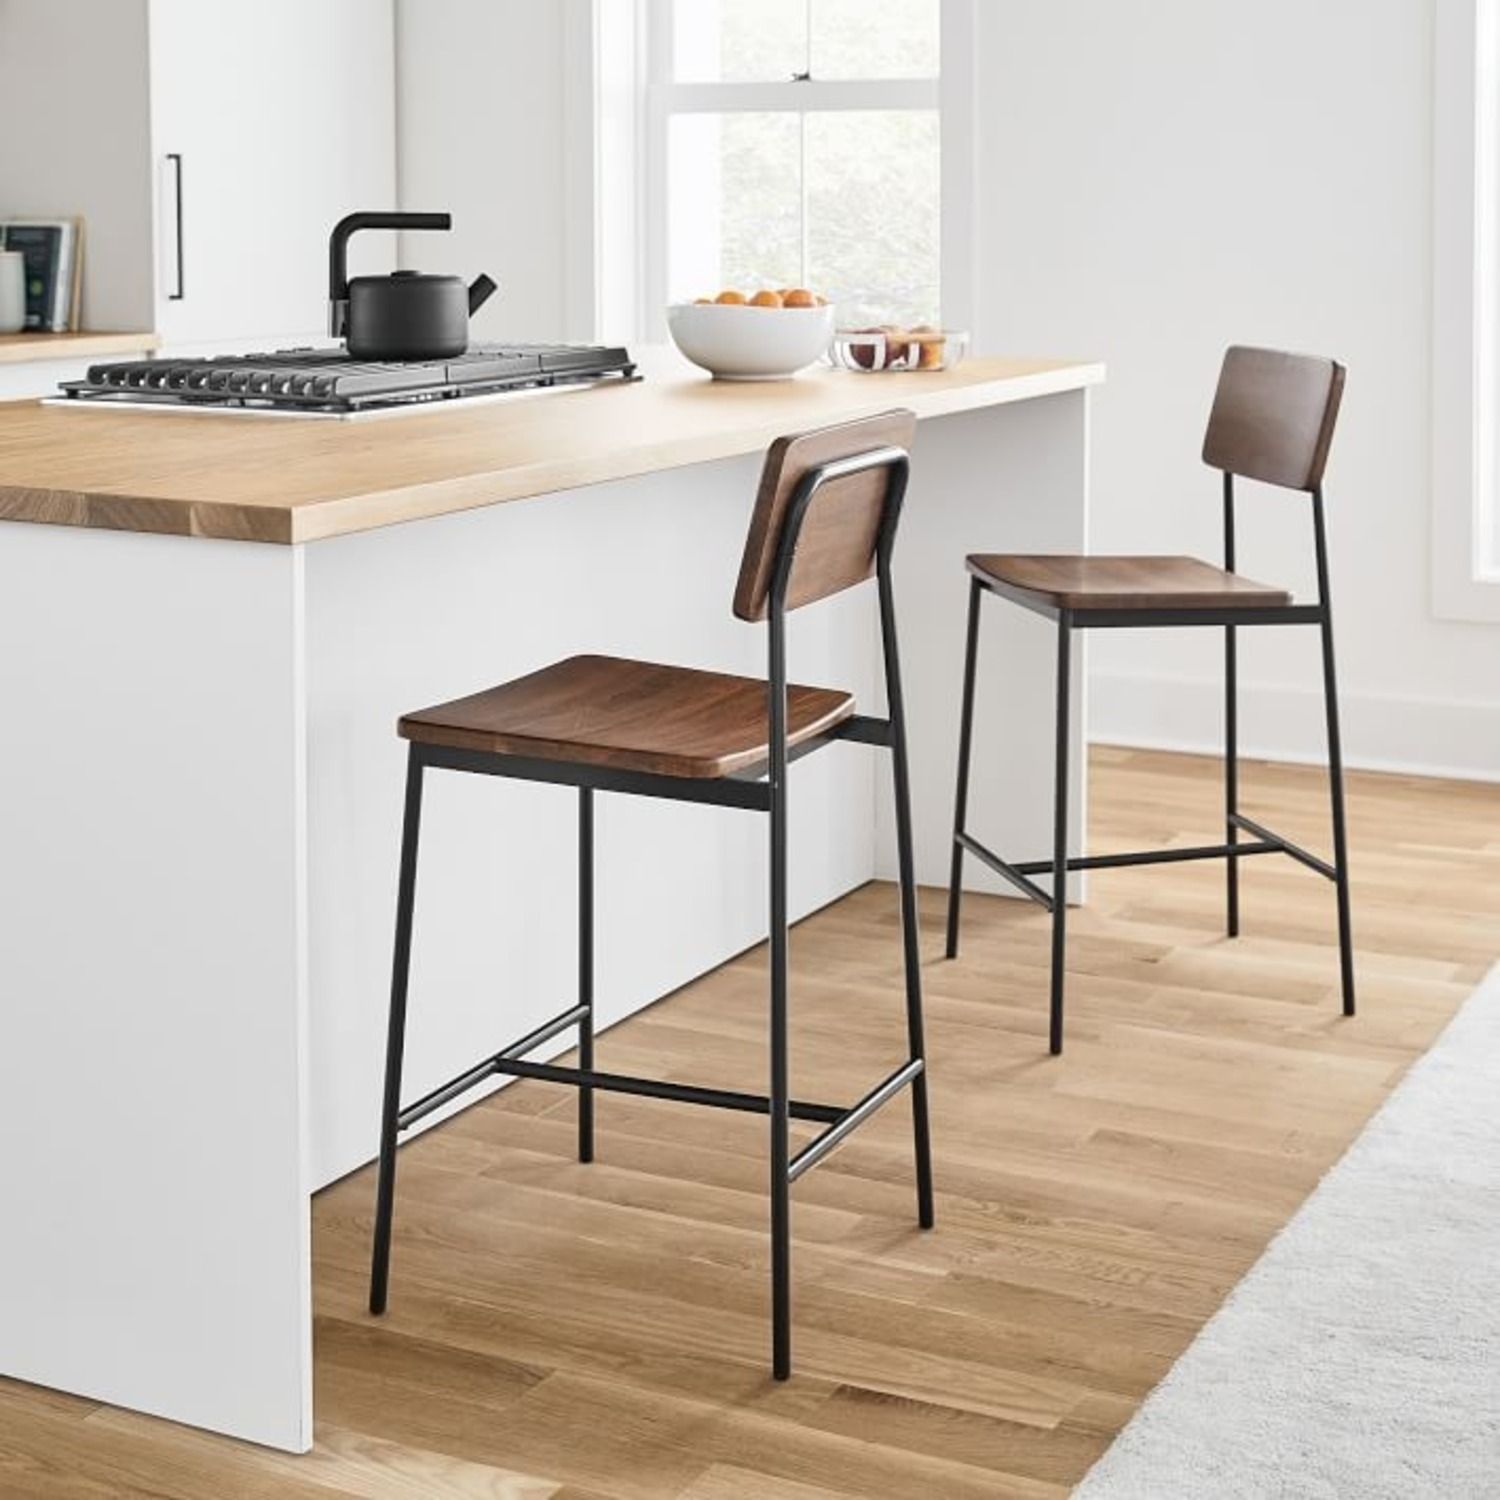 West Elm Augusta Rustic Counter Stool - image-1